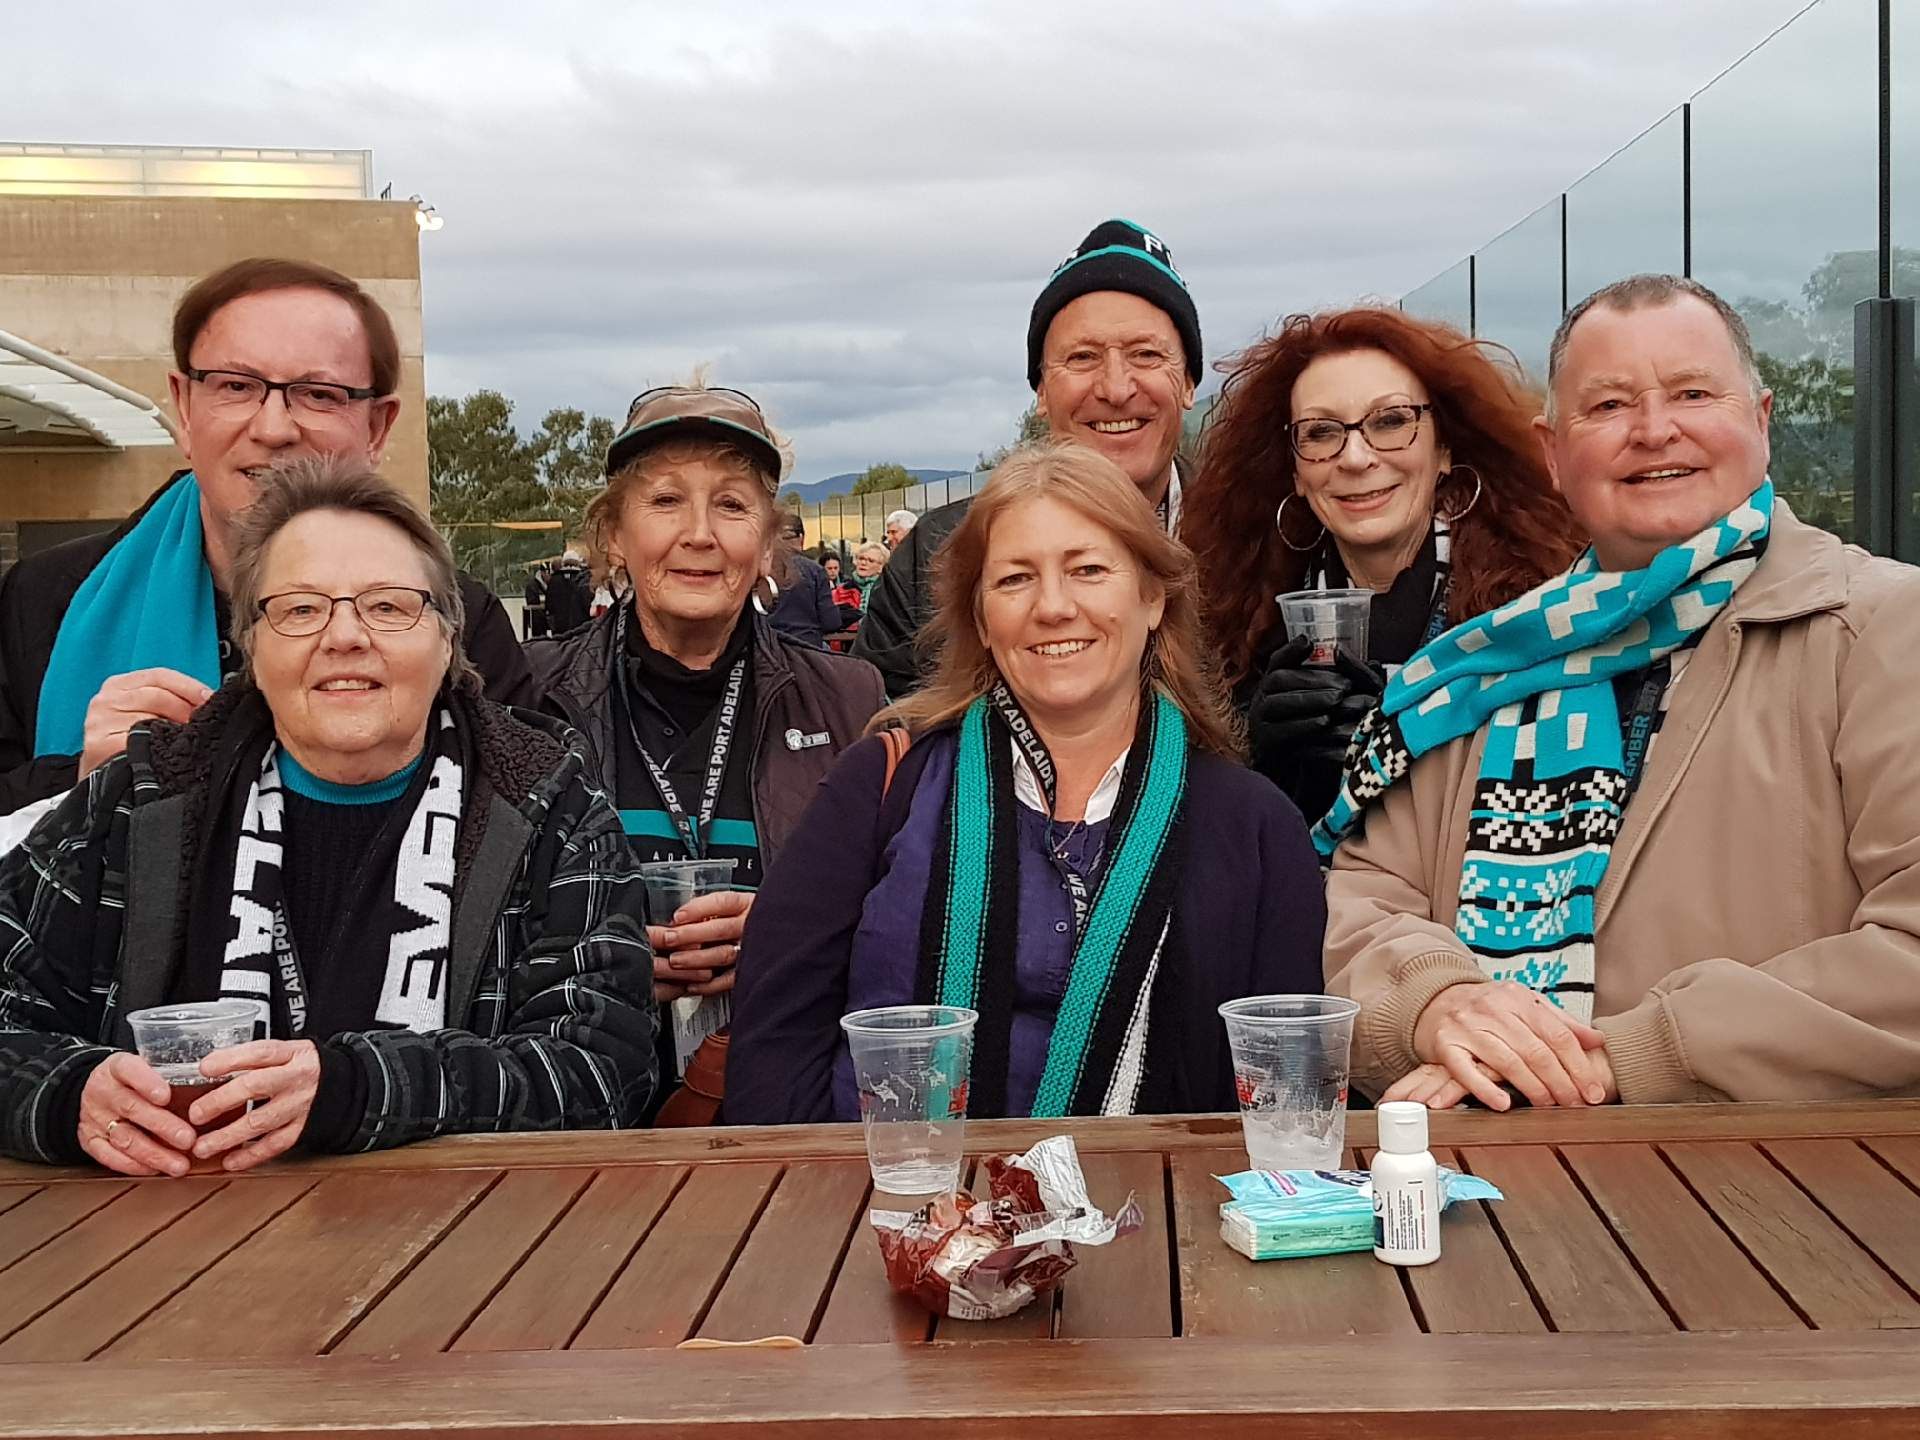 Port Adelaide's final home game with friends on Saturday, Aug 26.